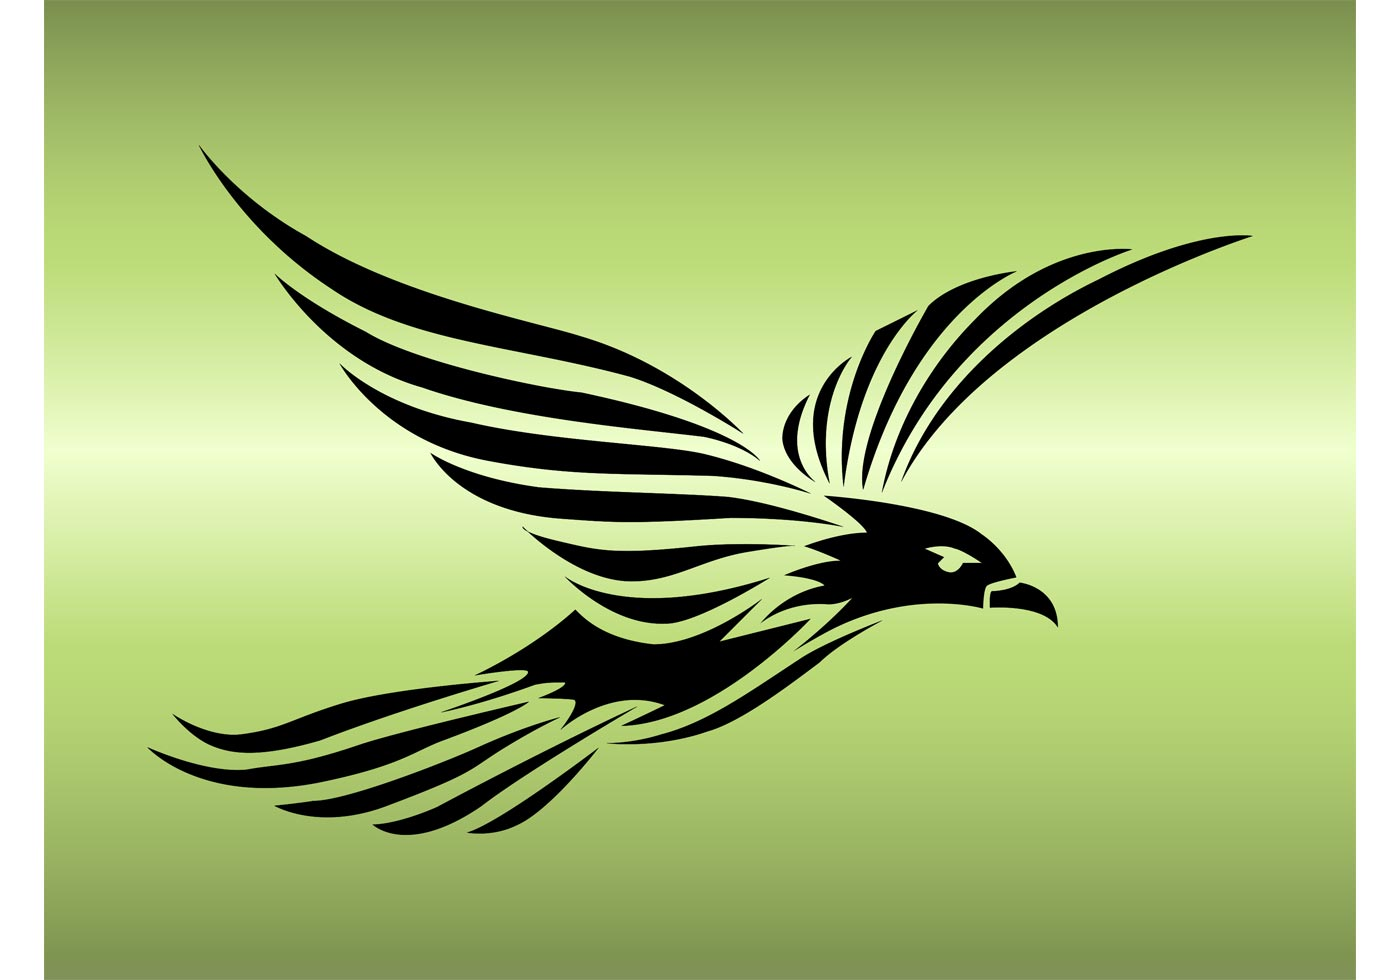 Aguia_Eagle Logo photo - 1